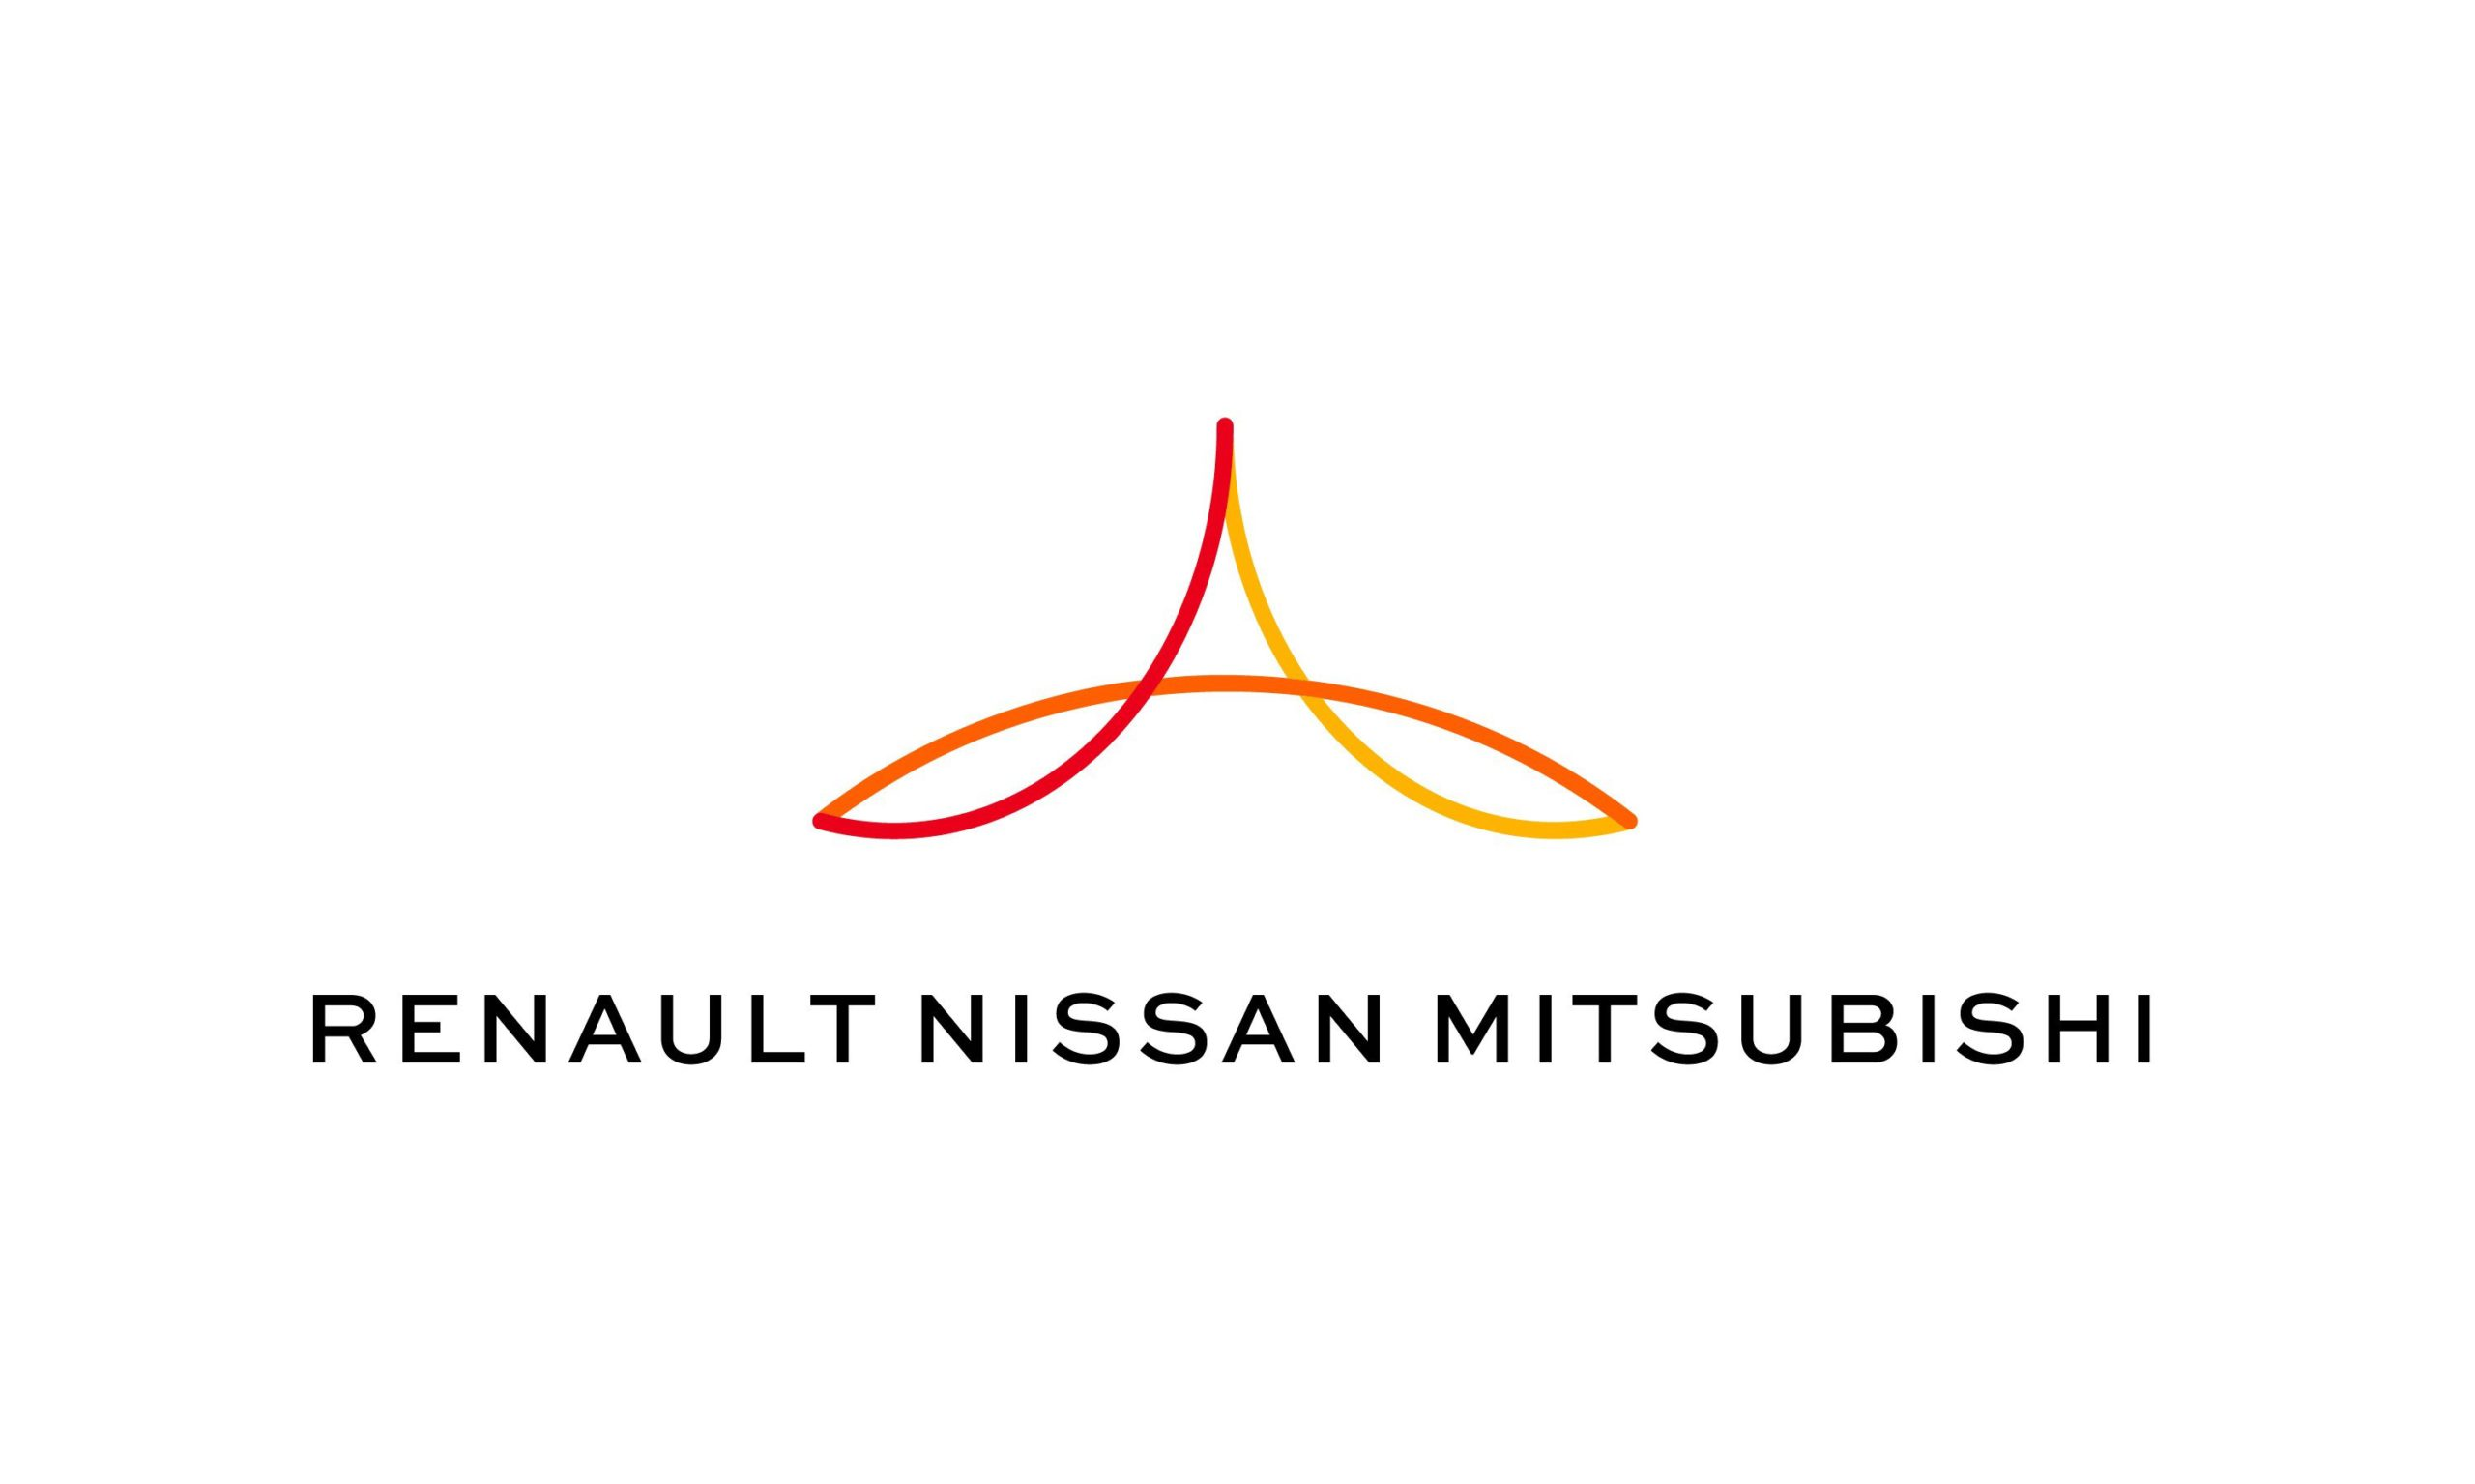 INTERNATIONAL NEWS: RENAULT-NISSAN-MITSUBISHI LAUNCHES A VENTURE CAPITAL FUND TO INVEST UP TO $1 BILLION OVER FIVE YEARS